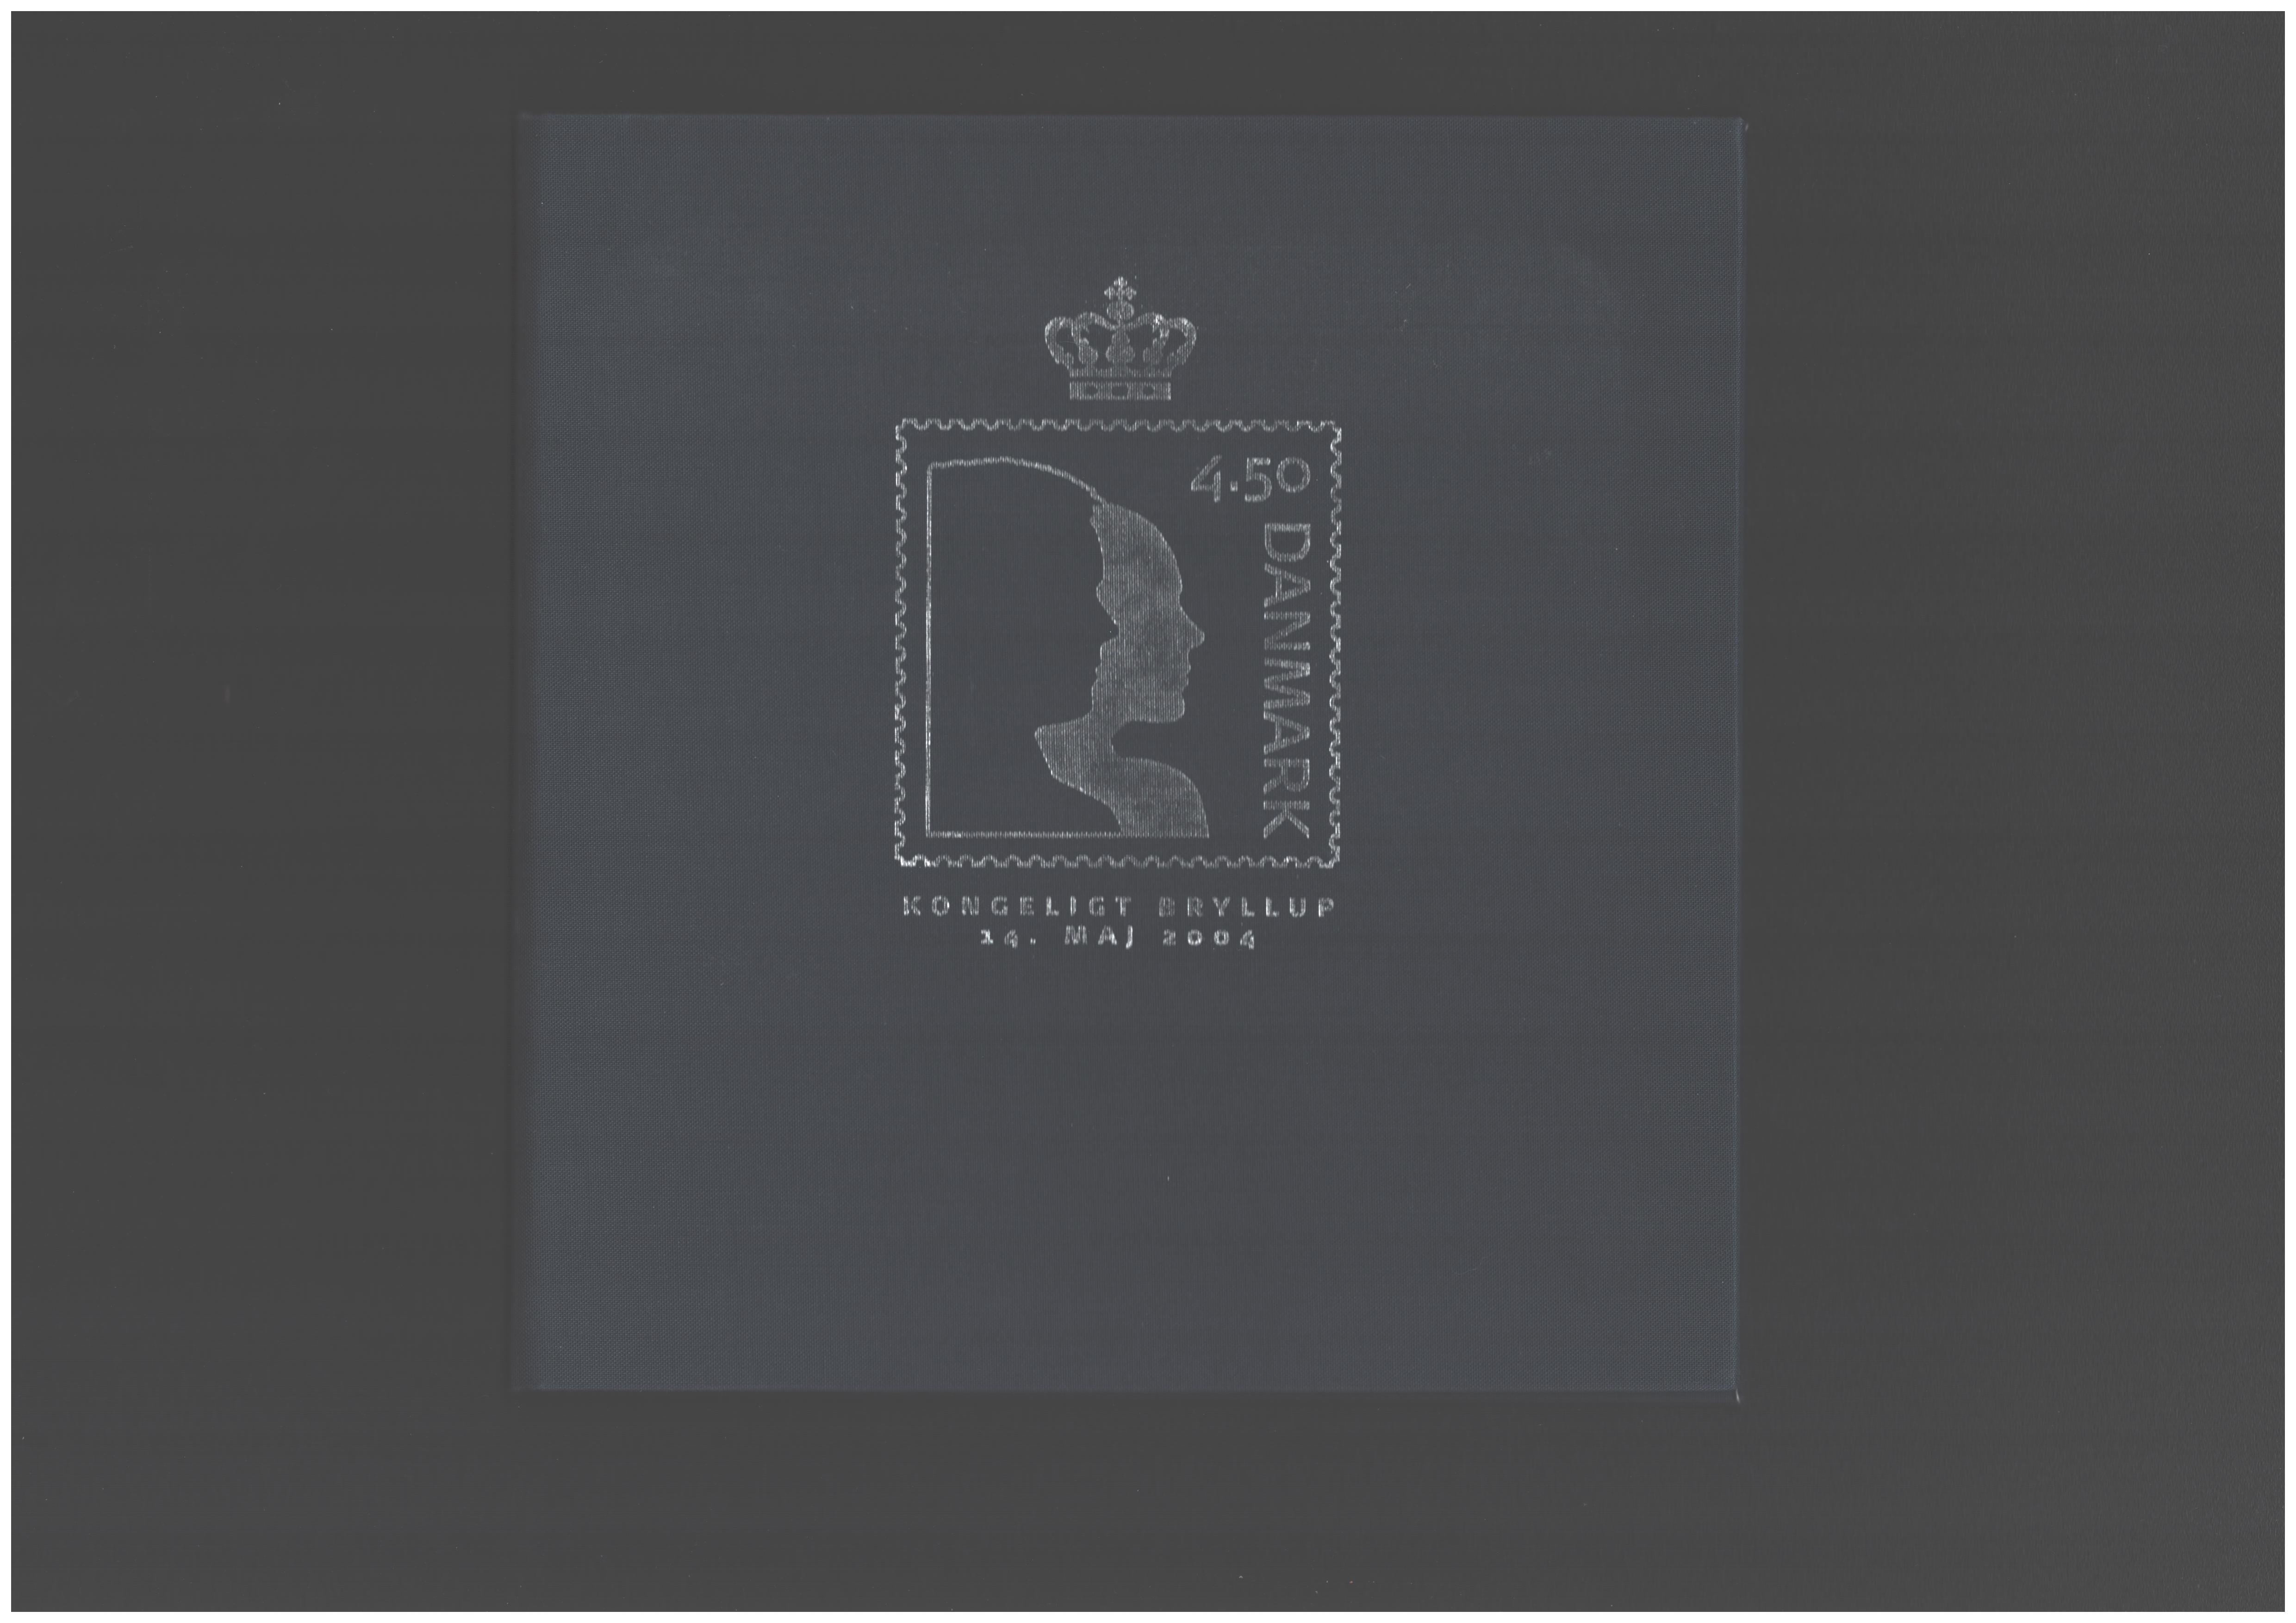 Danish 2004 Royal wedding stamps in folder. SGMS1384, SG1382 and SG1383. Good condition. We